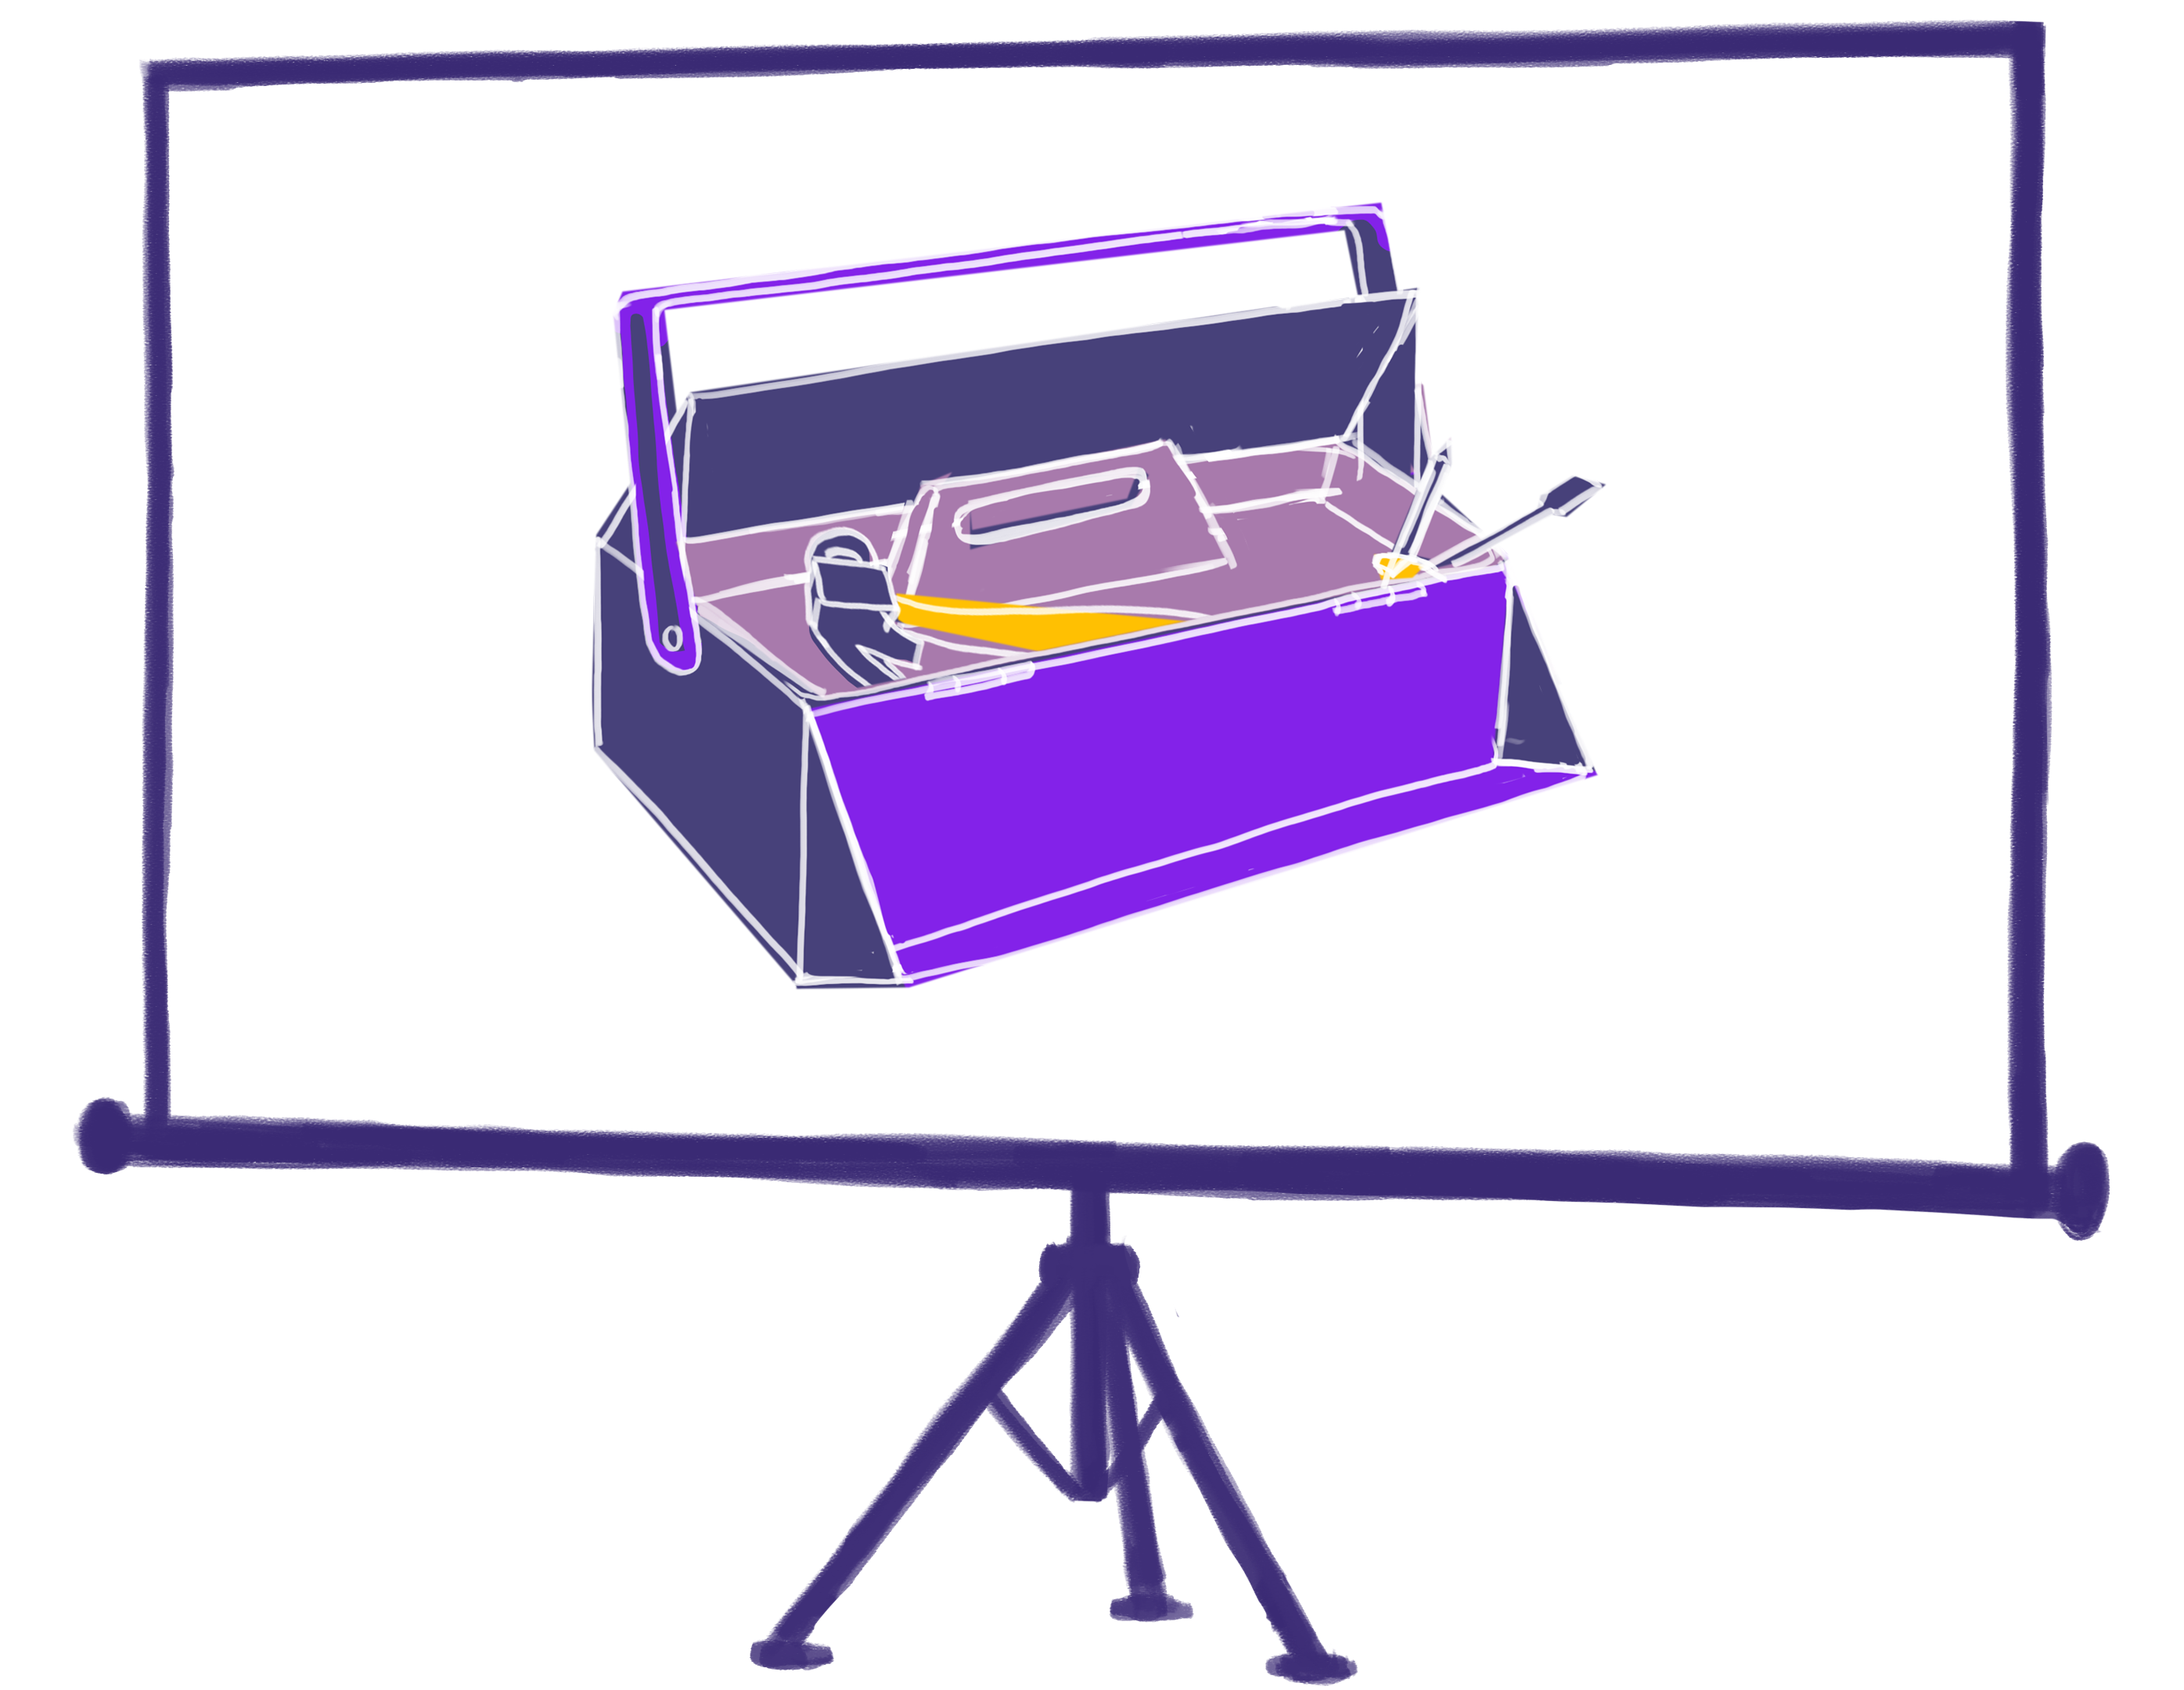 The Zoom Toolbox